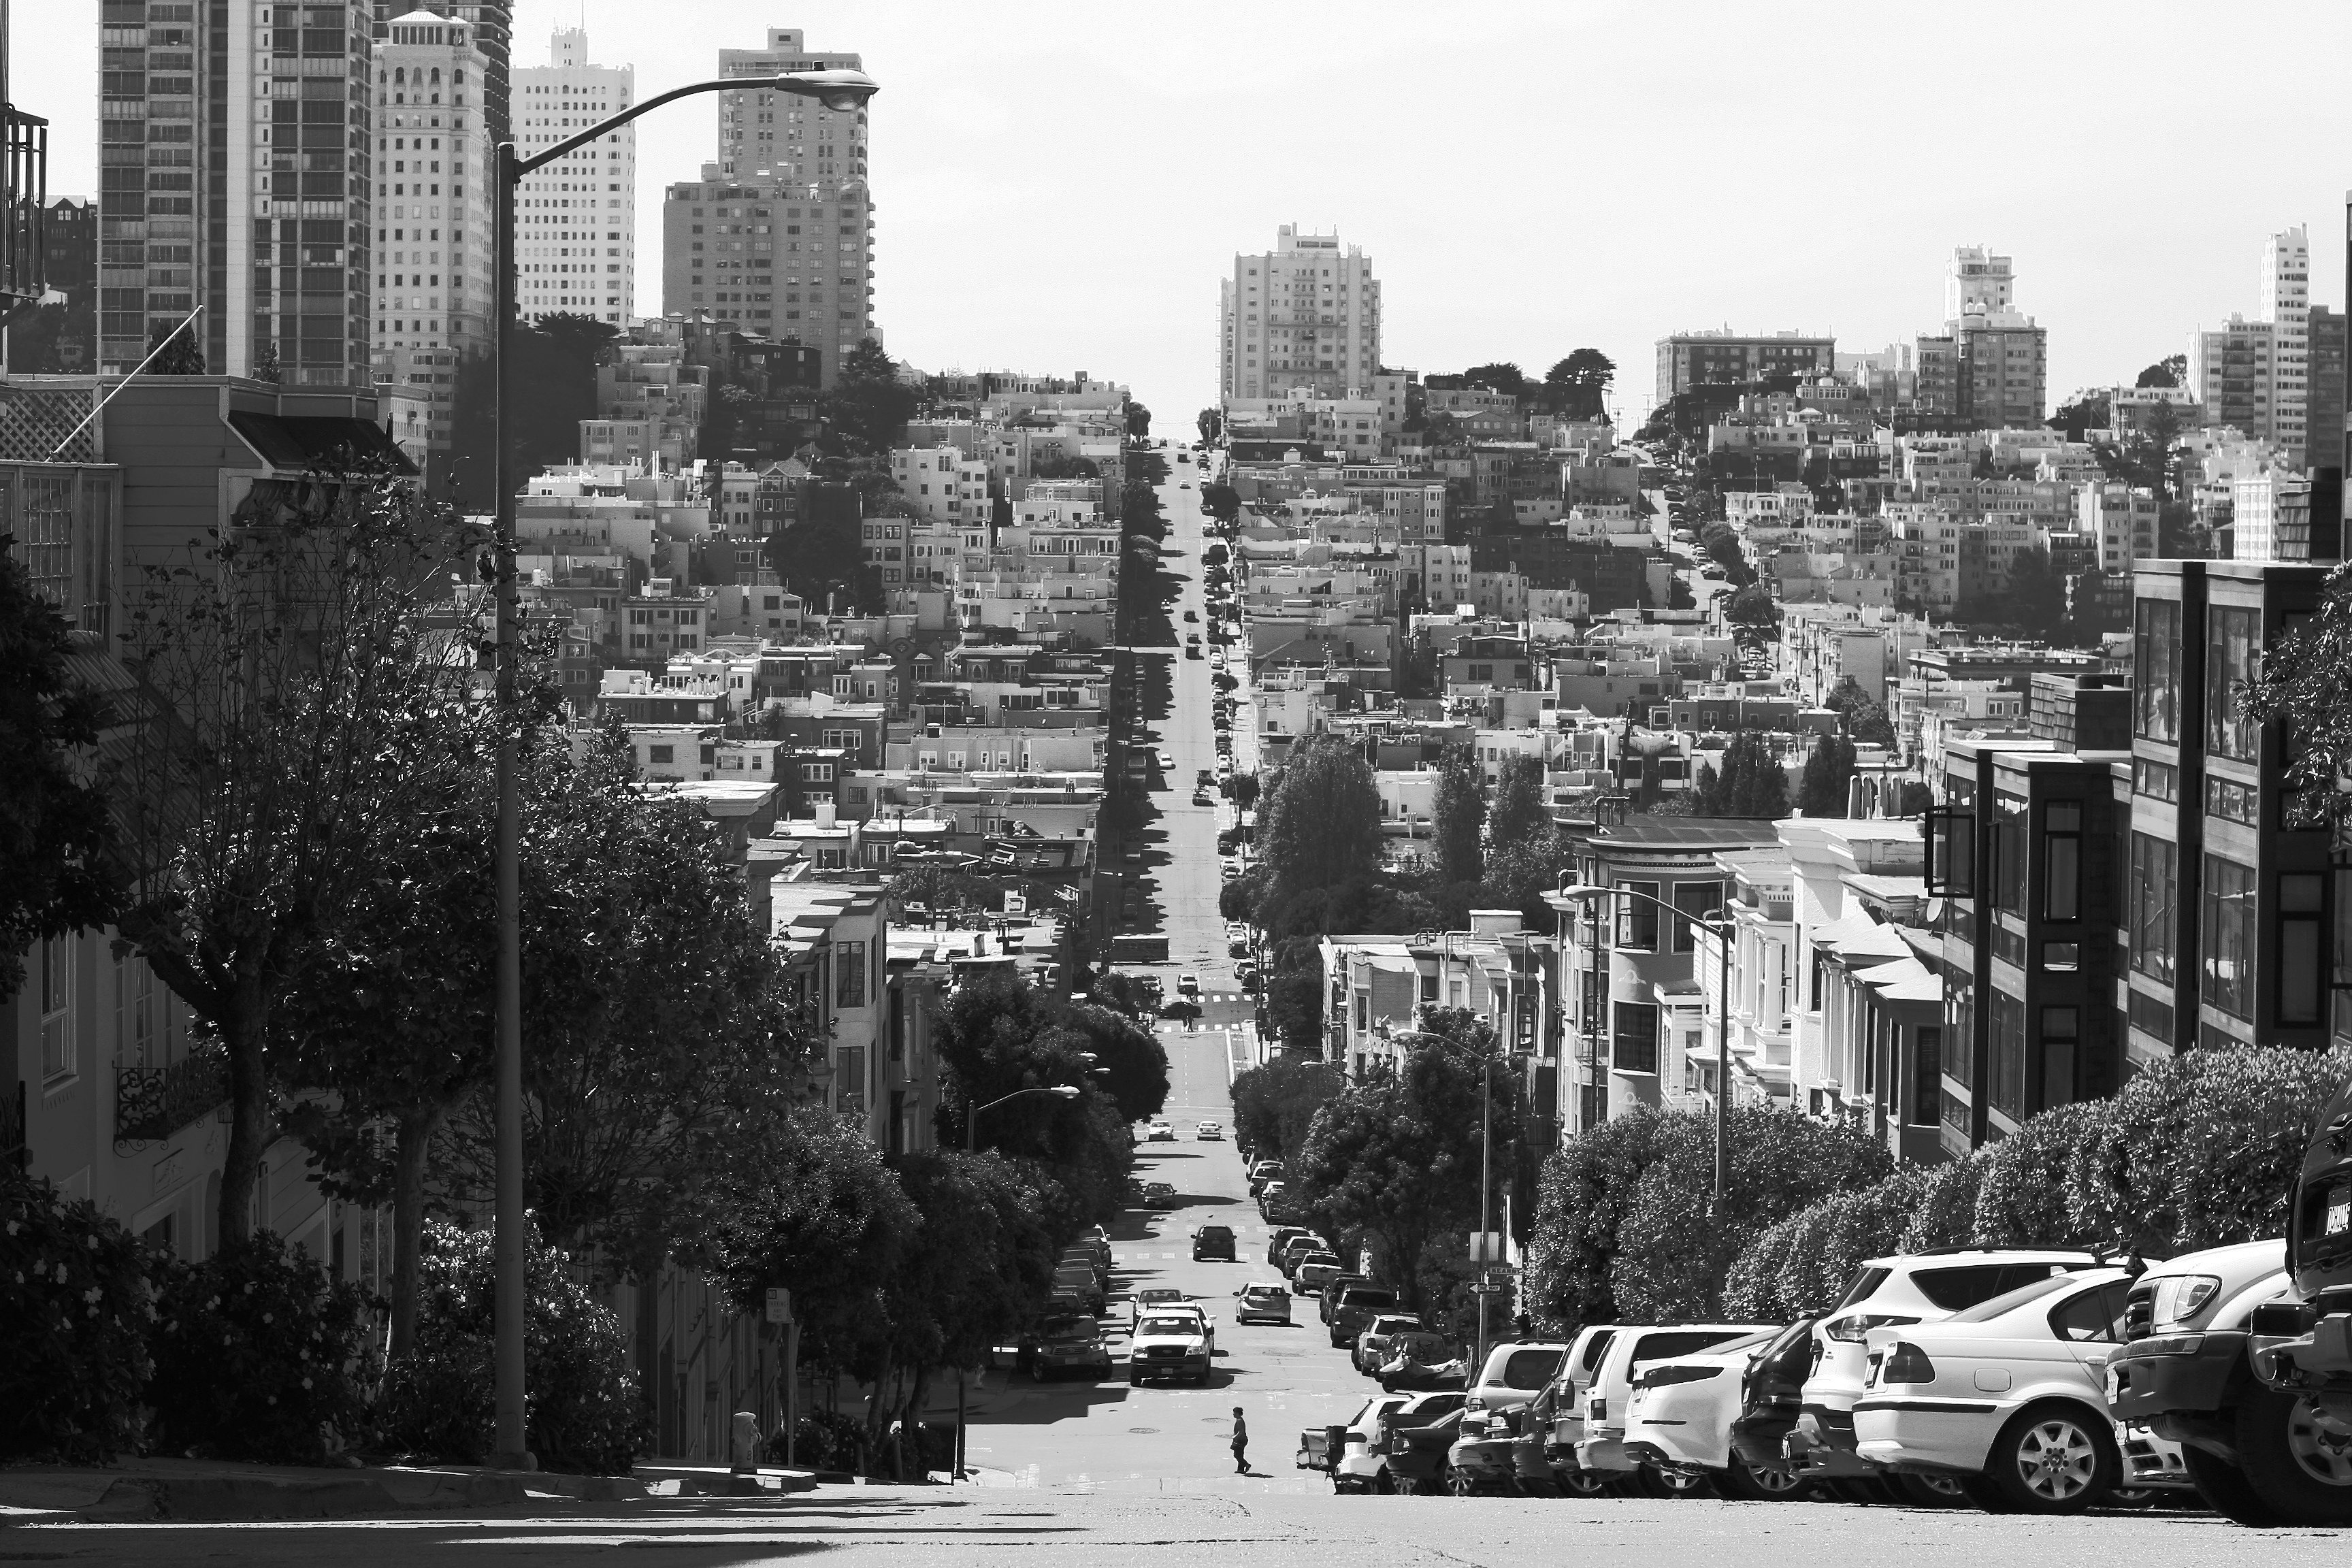 A person skateboarding down a huge hill in San Francisco